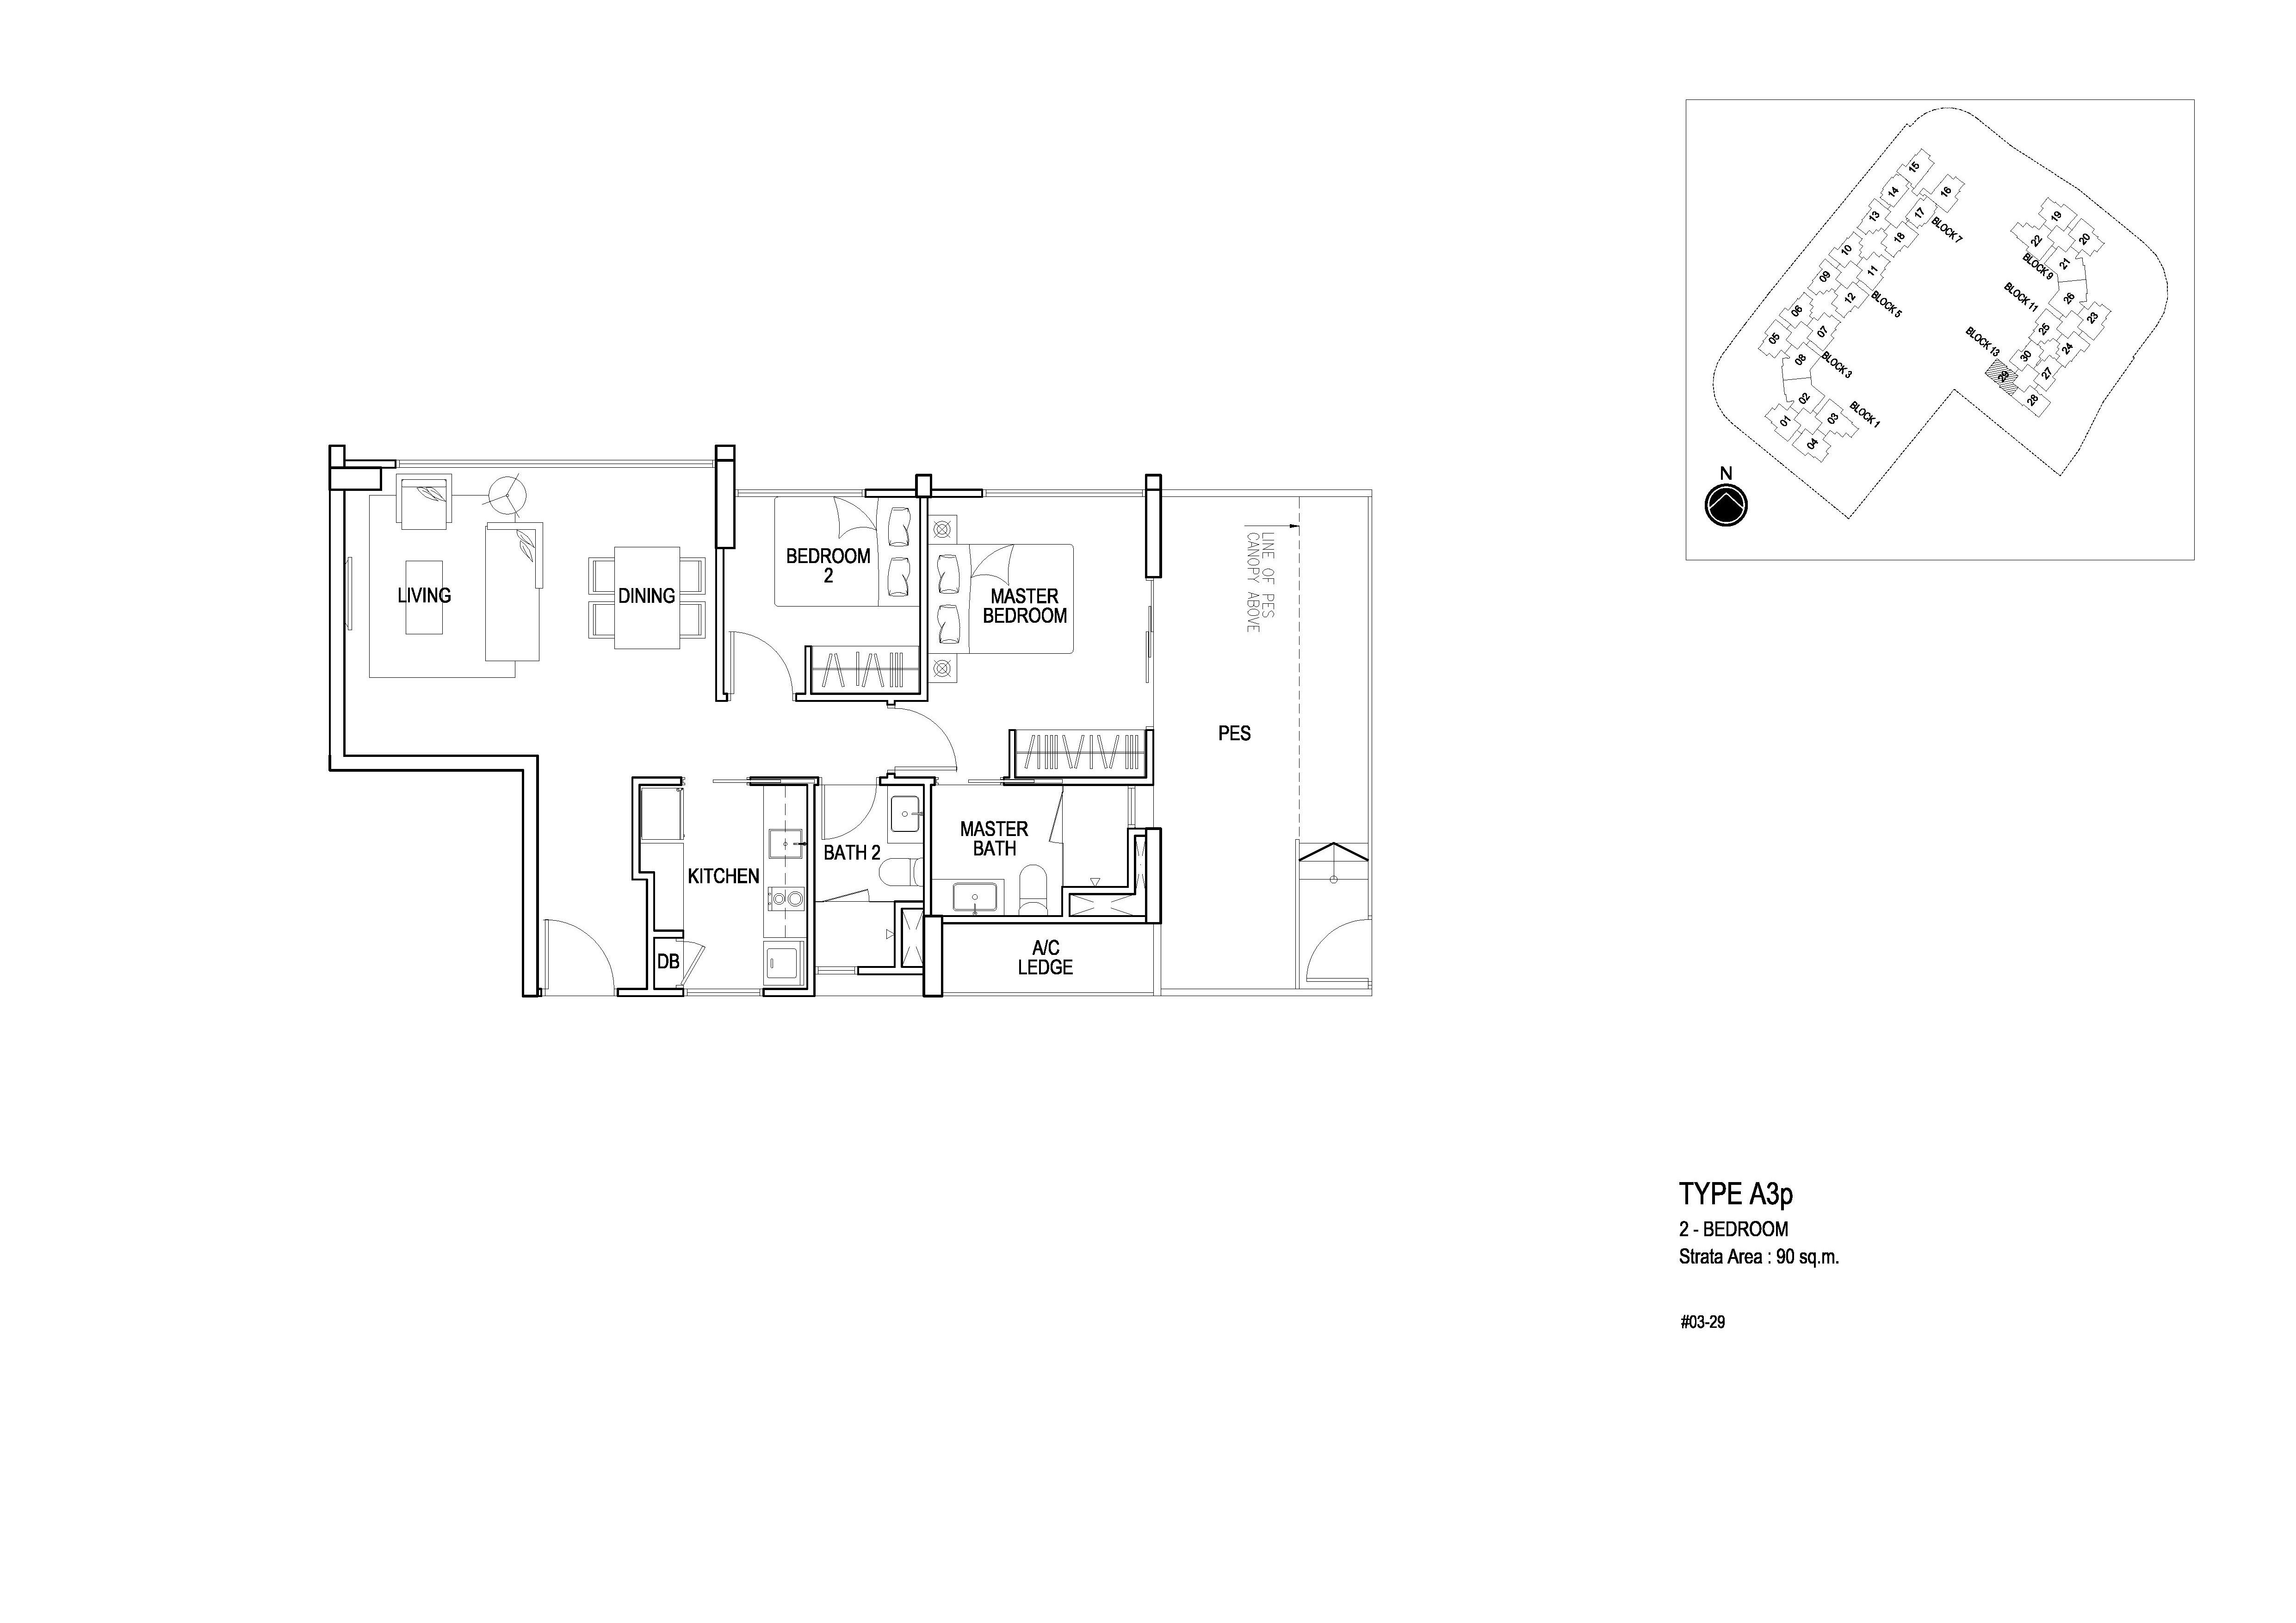 Flo Residence 2 Bedroom PES Floor Plans Type A3p